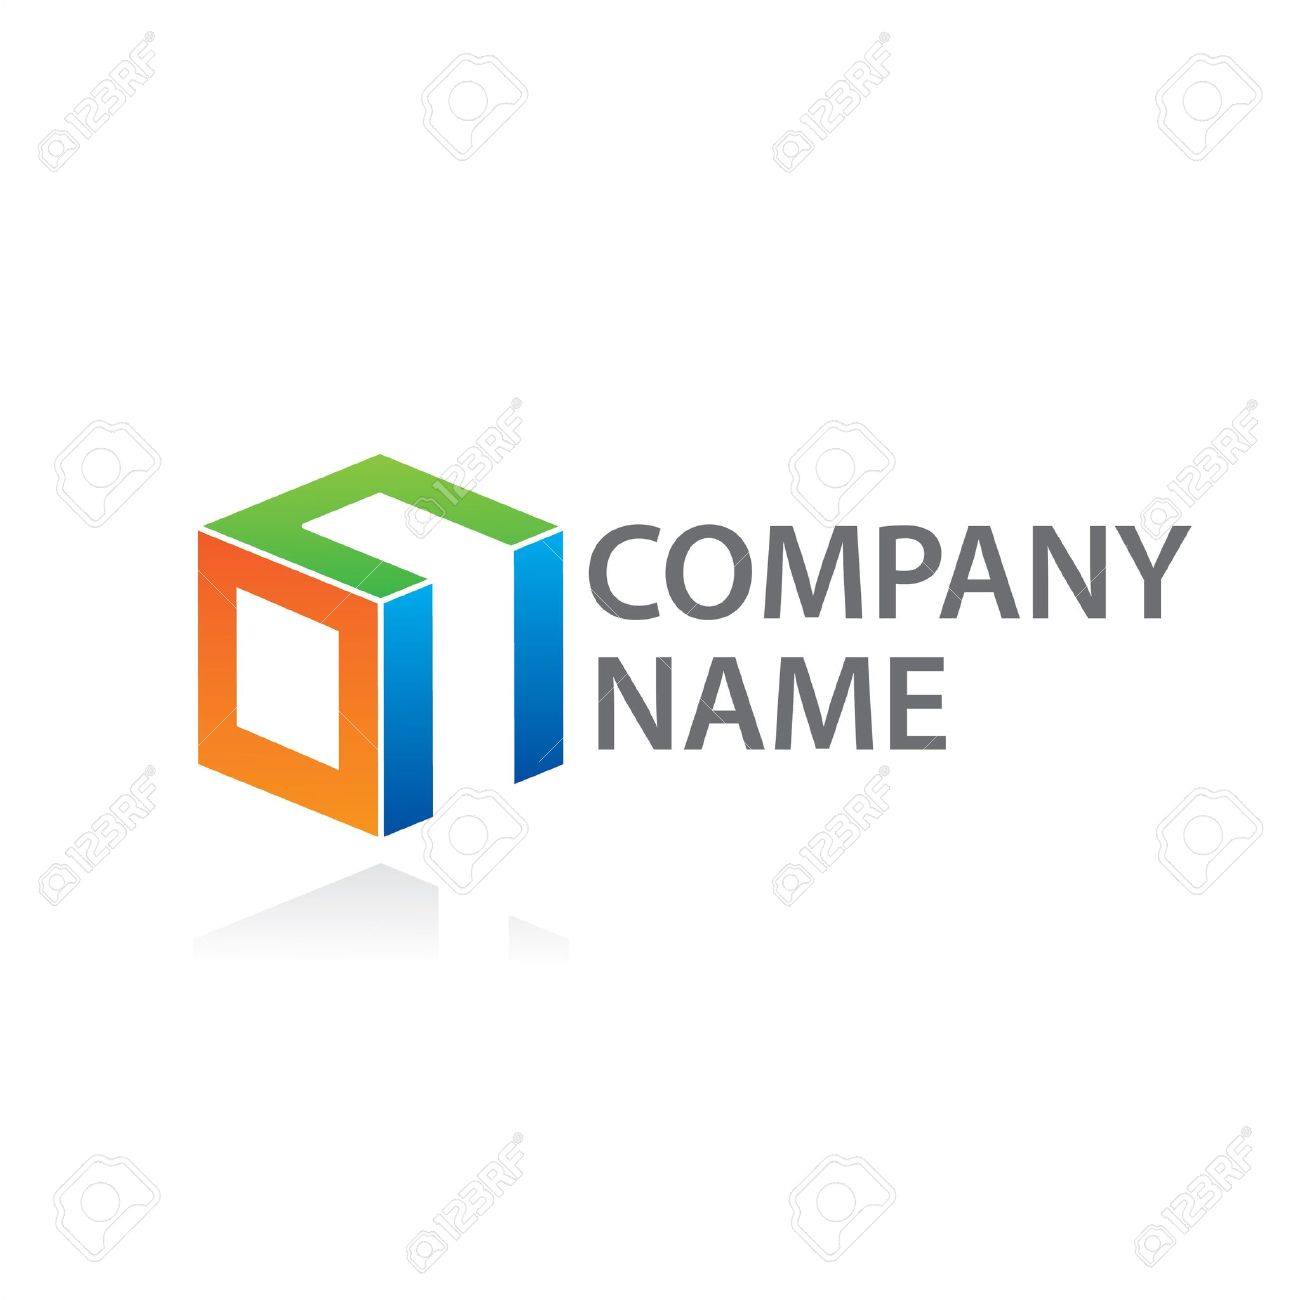 Template to mark the company. Put your company name rather than text. Stock Vector - 9458039